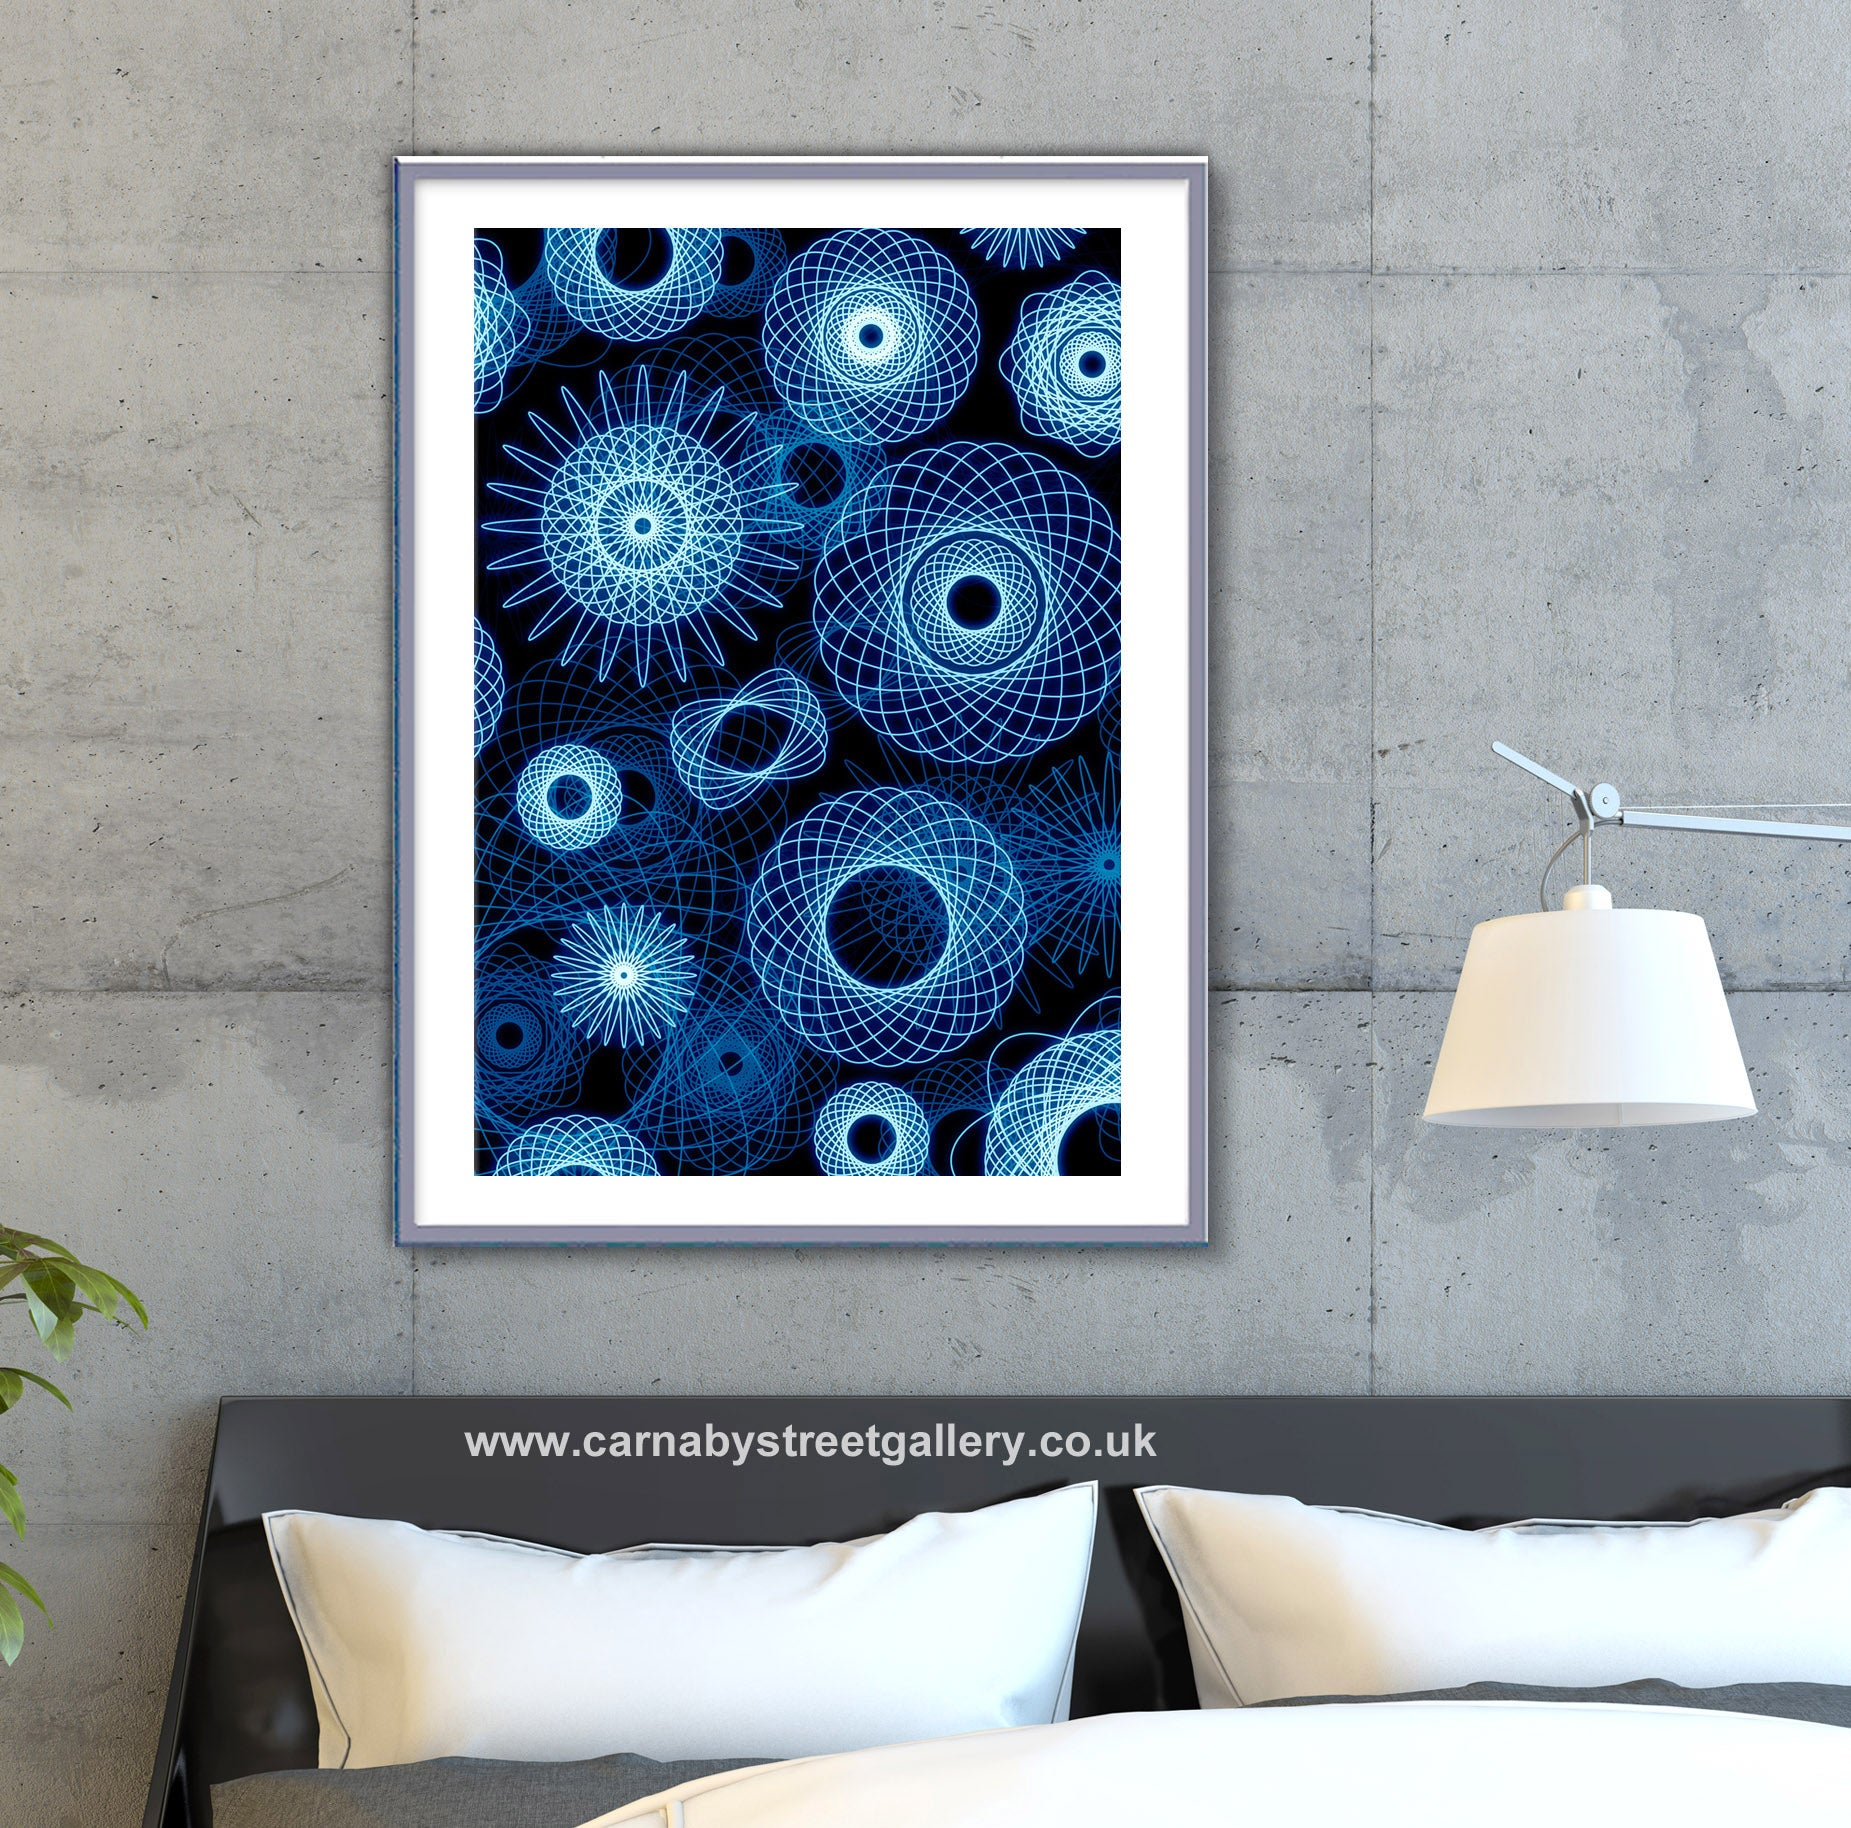 DIG THAT CRAZY SPYROGRAPH! - geometric art print based on the still popular vintage kids drawing set - blue background art print - 'Unframed'